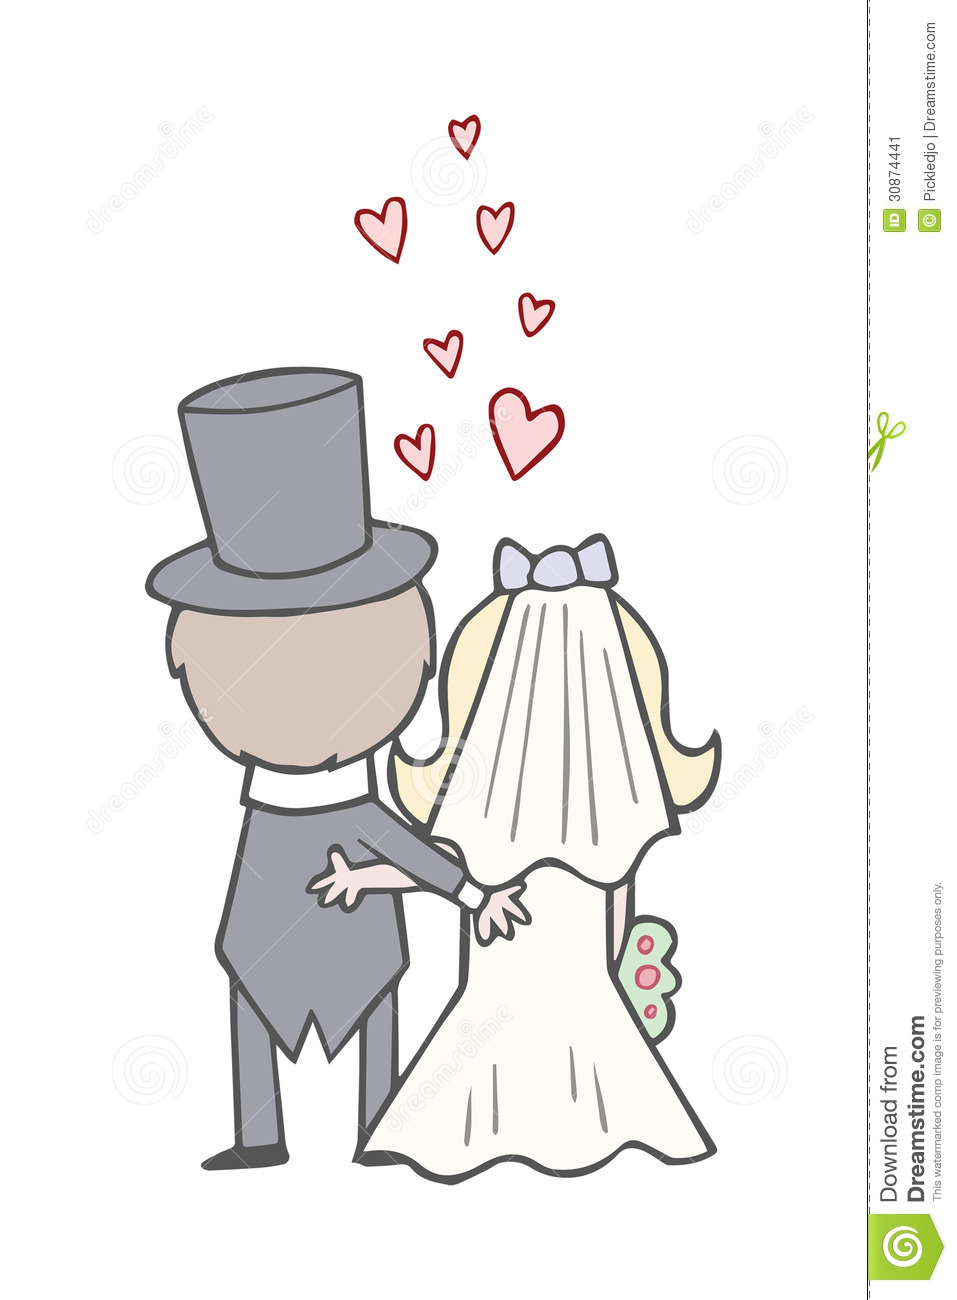 Wedding Bride And Groom Backs Wedding Day Cute Cartoon